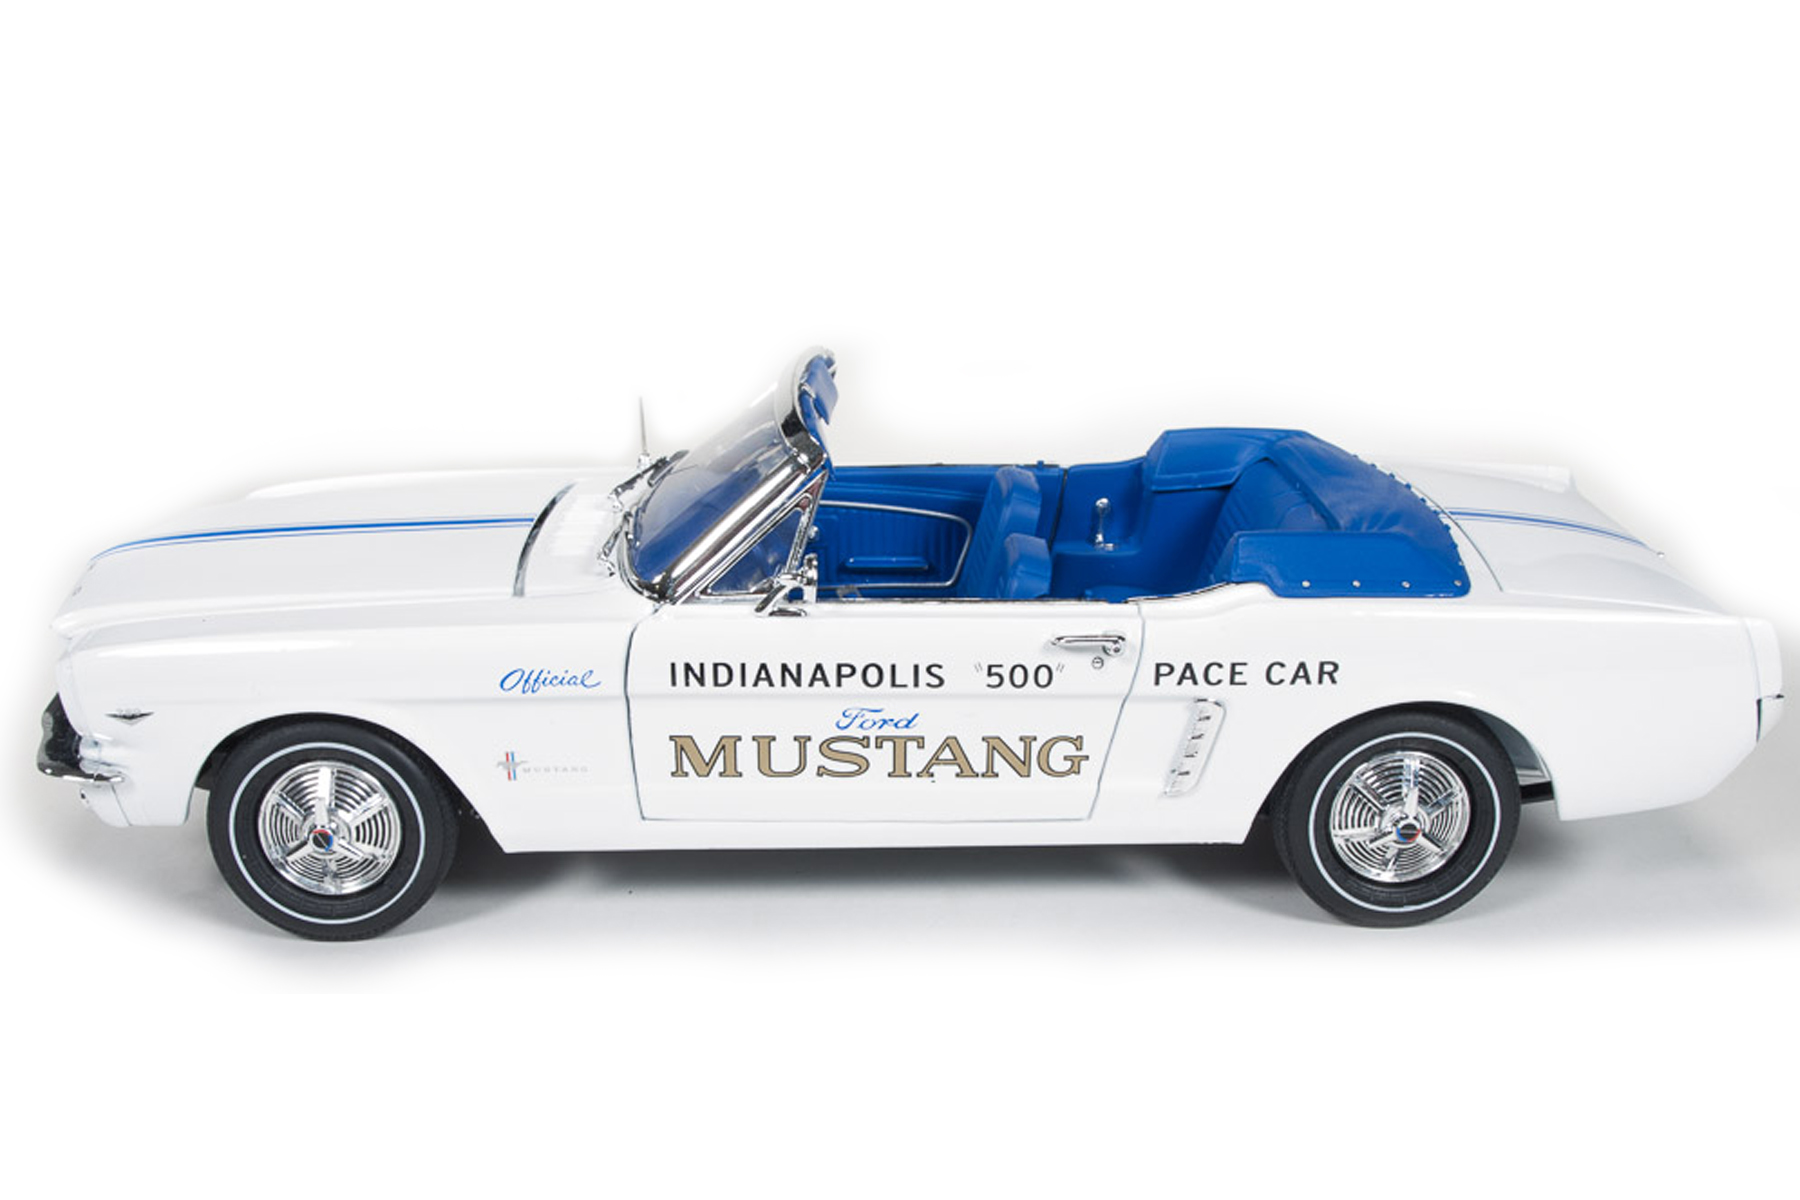 1964 1/2 Ford Mustang Convertible Indy Pace Car | Round2